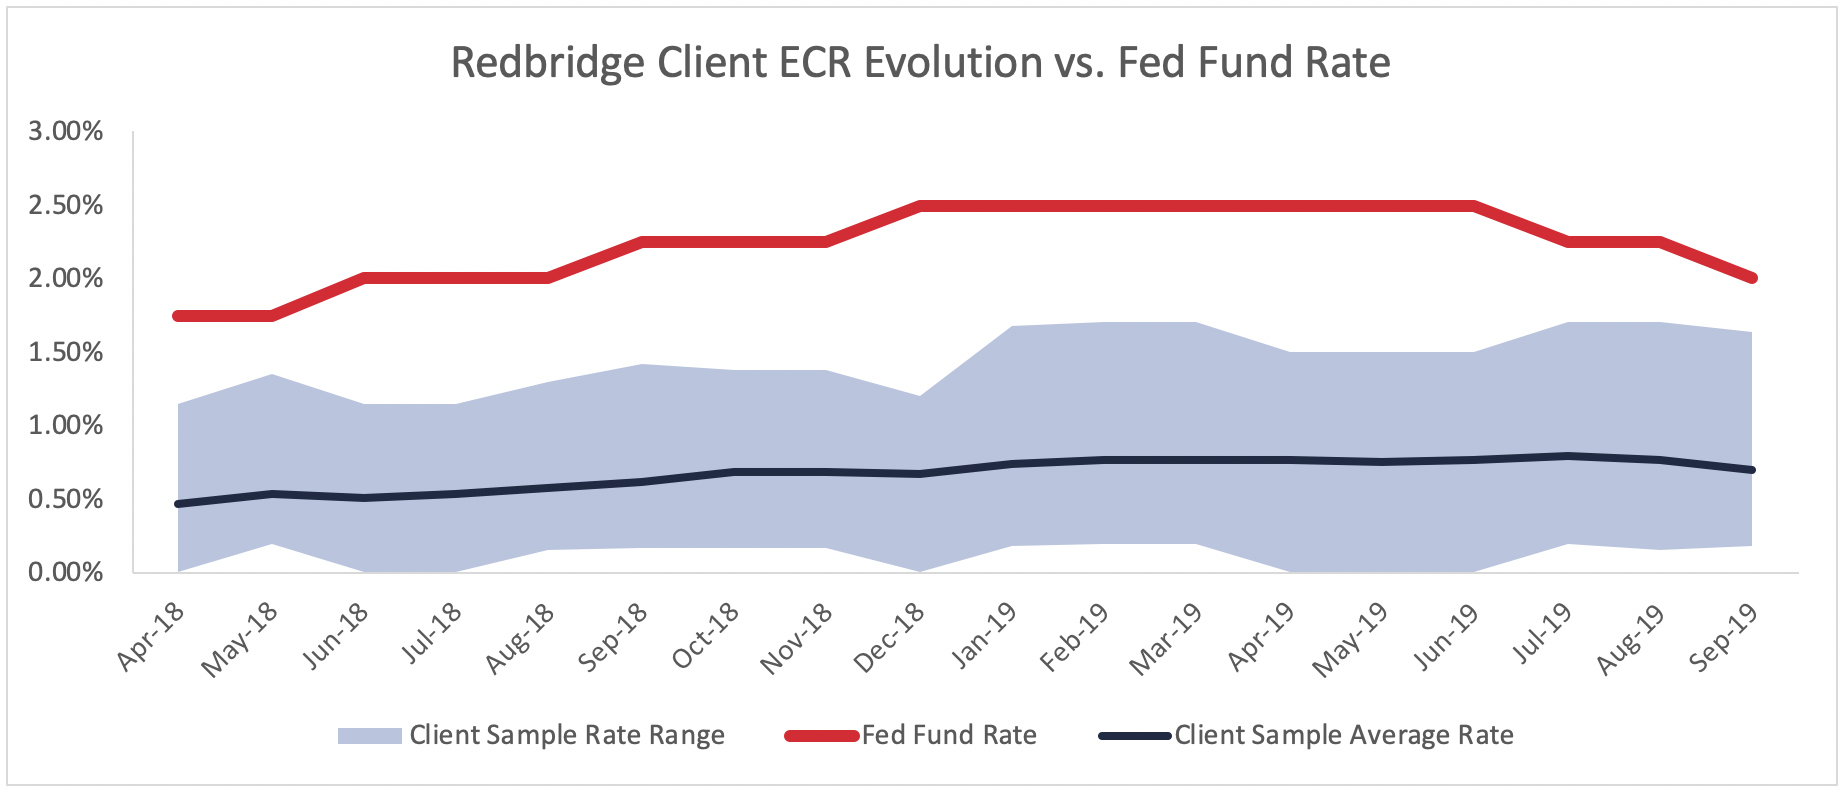 Graph showing redbridge clients' ecr evolution vs fed fund rate